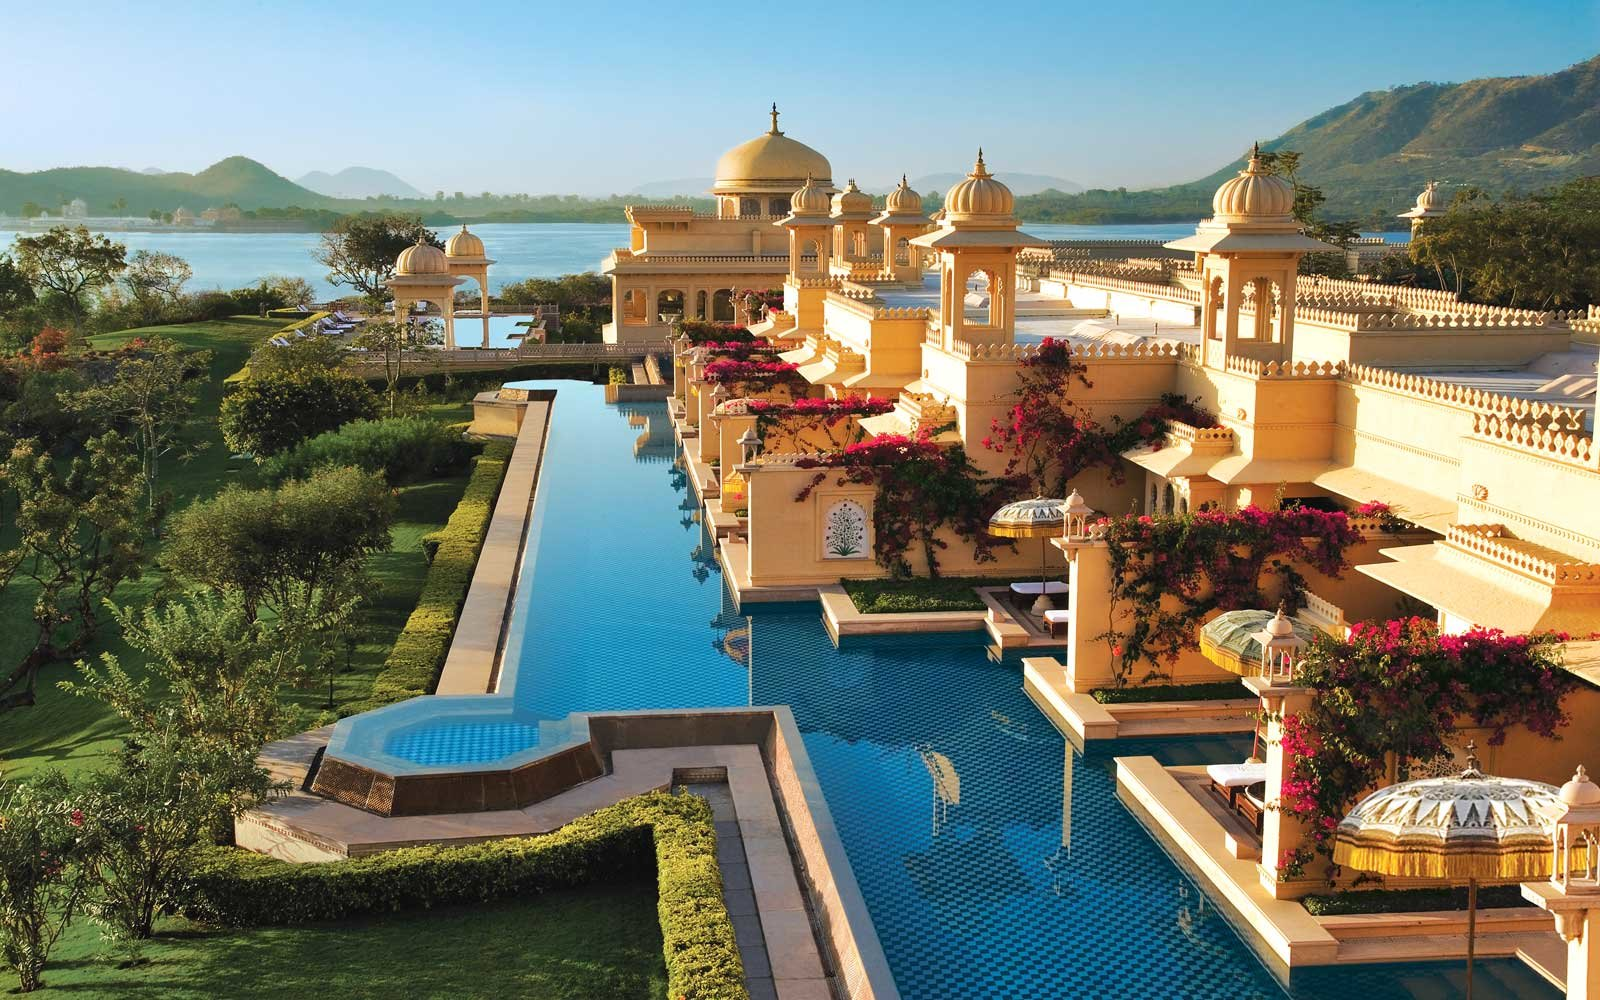 Overview of the Oberoi Udaivilas